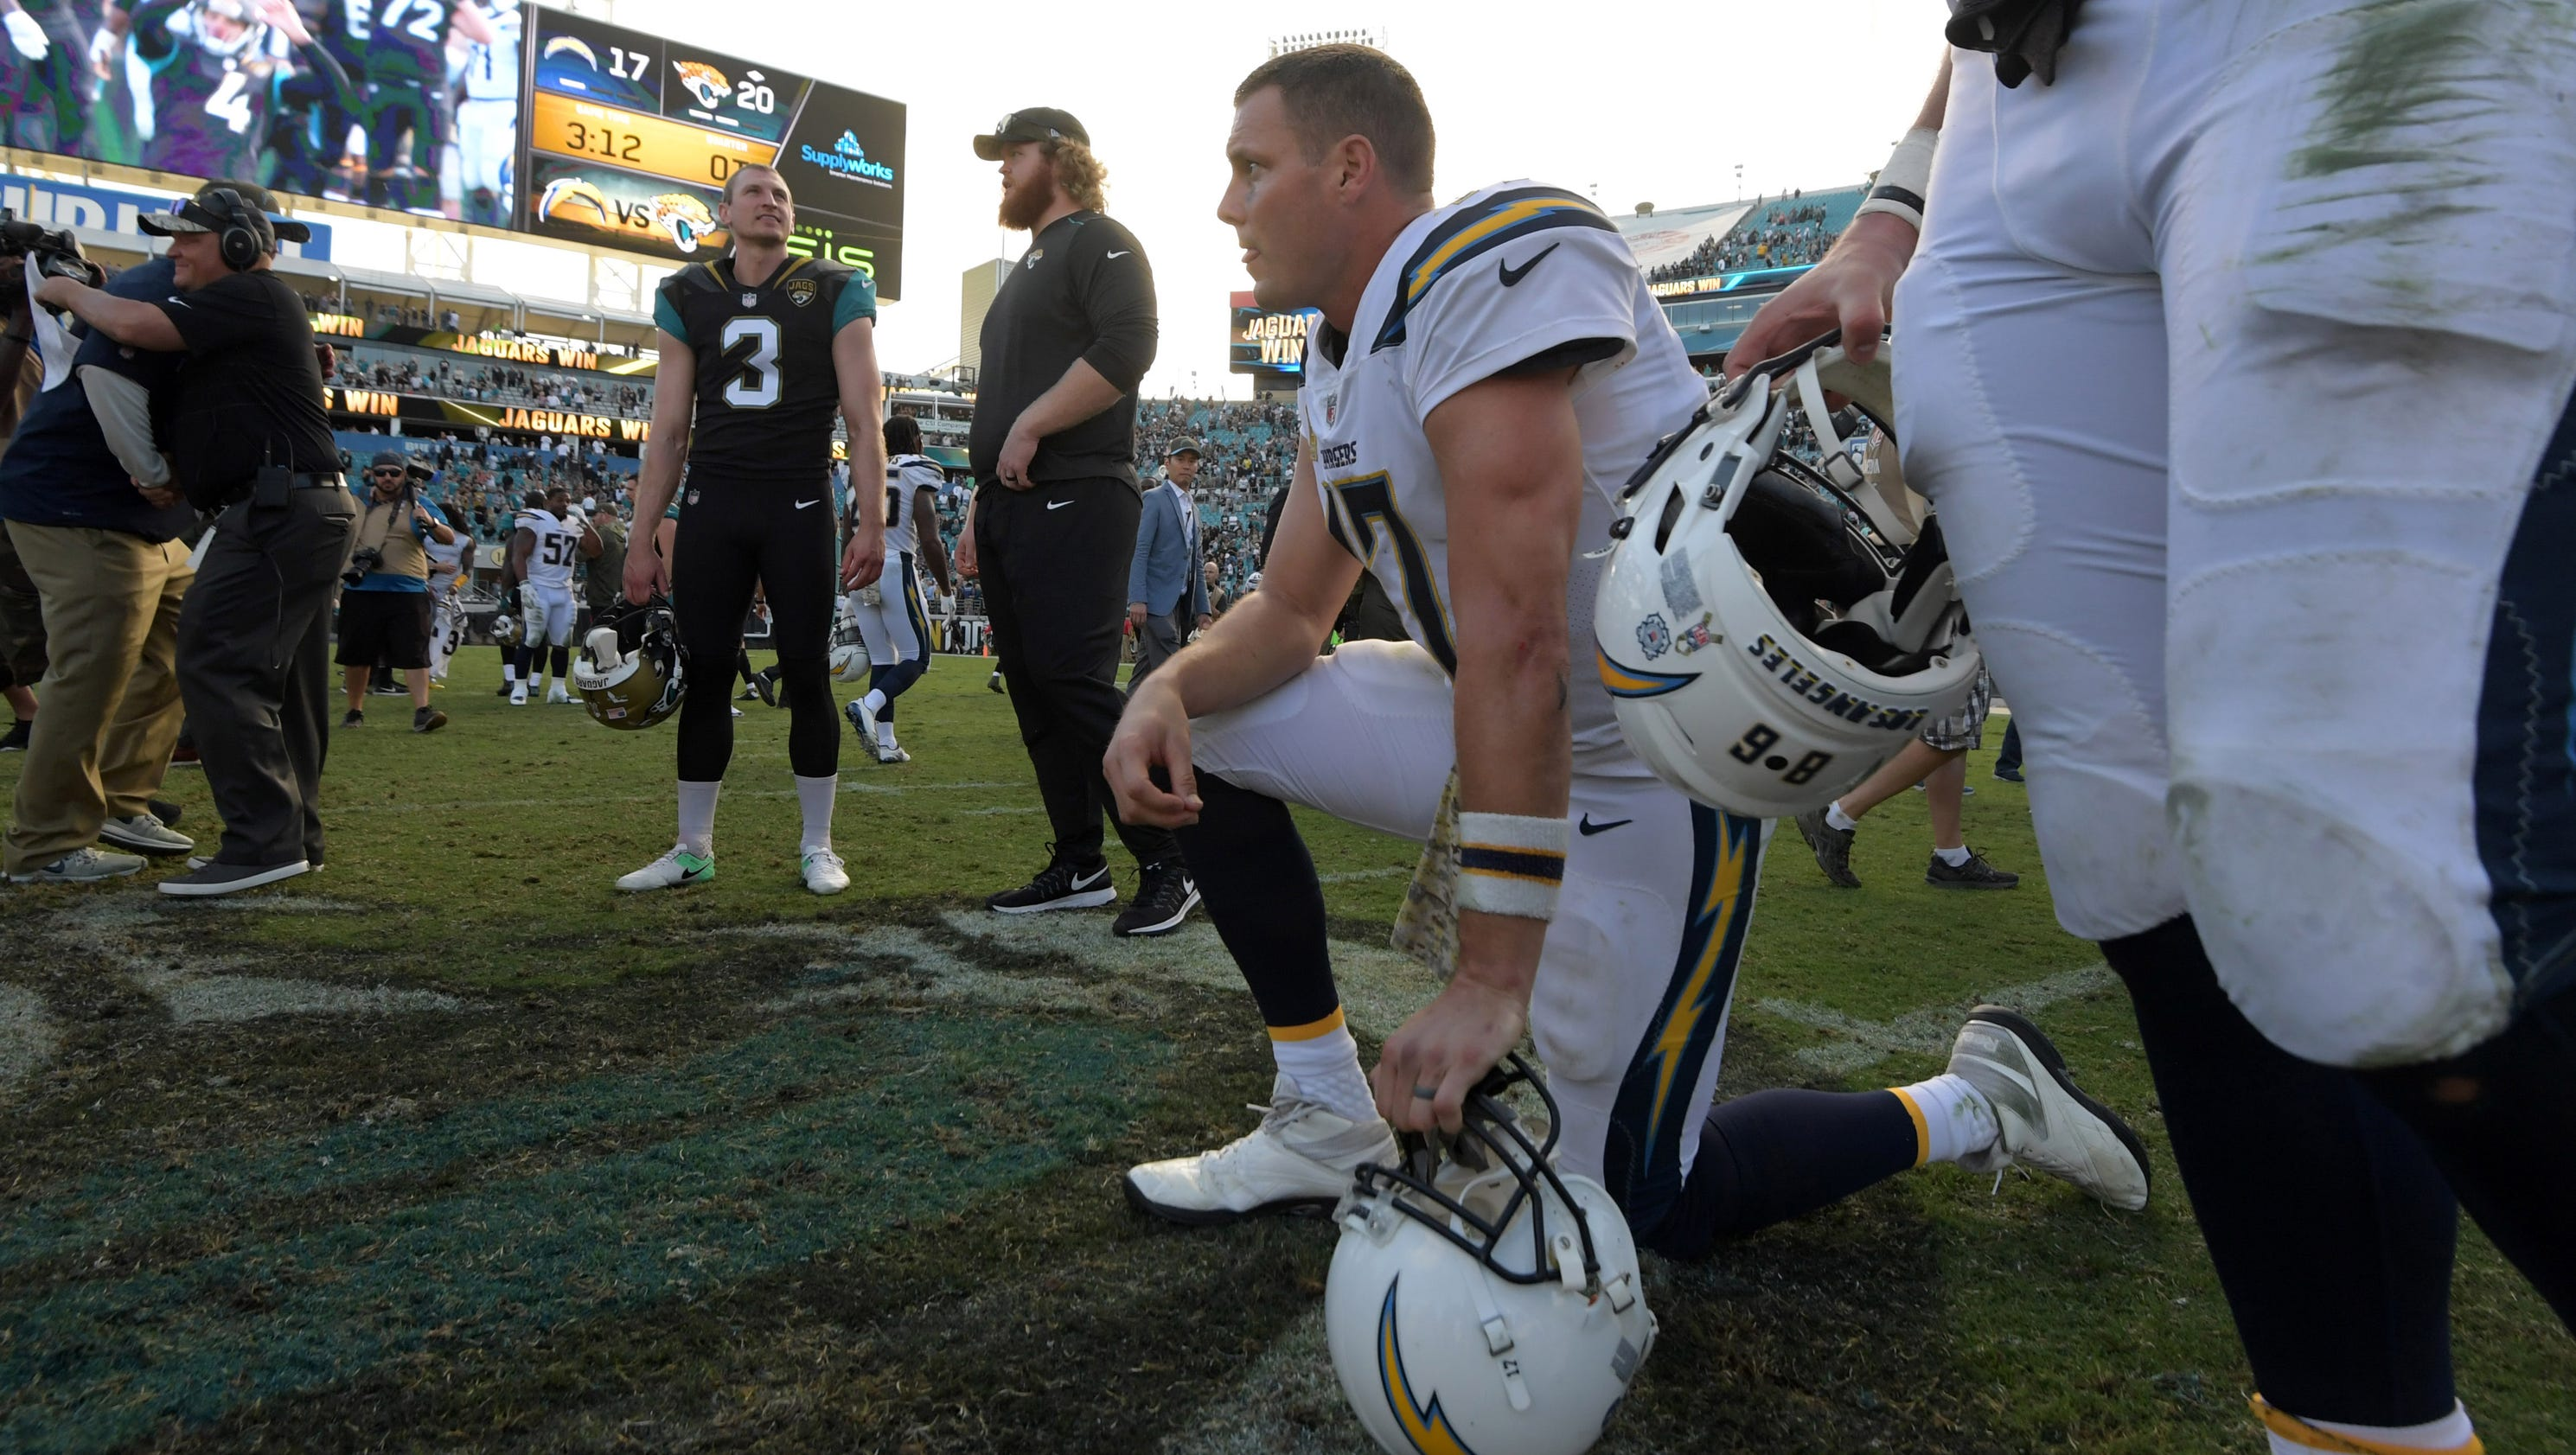 636465431647279910-usp-nfl--los-angeles-chargers-at-jacksonville-jagu